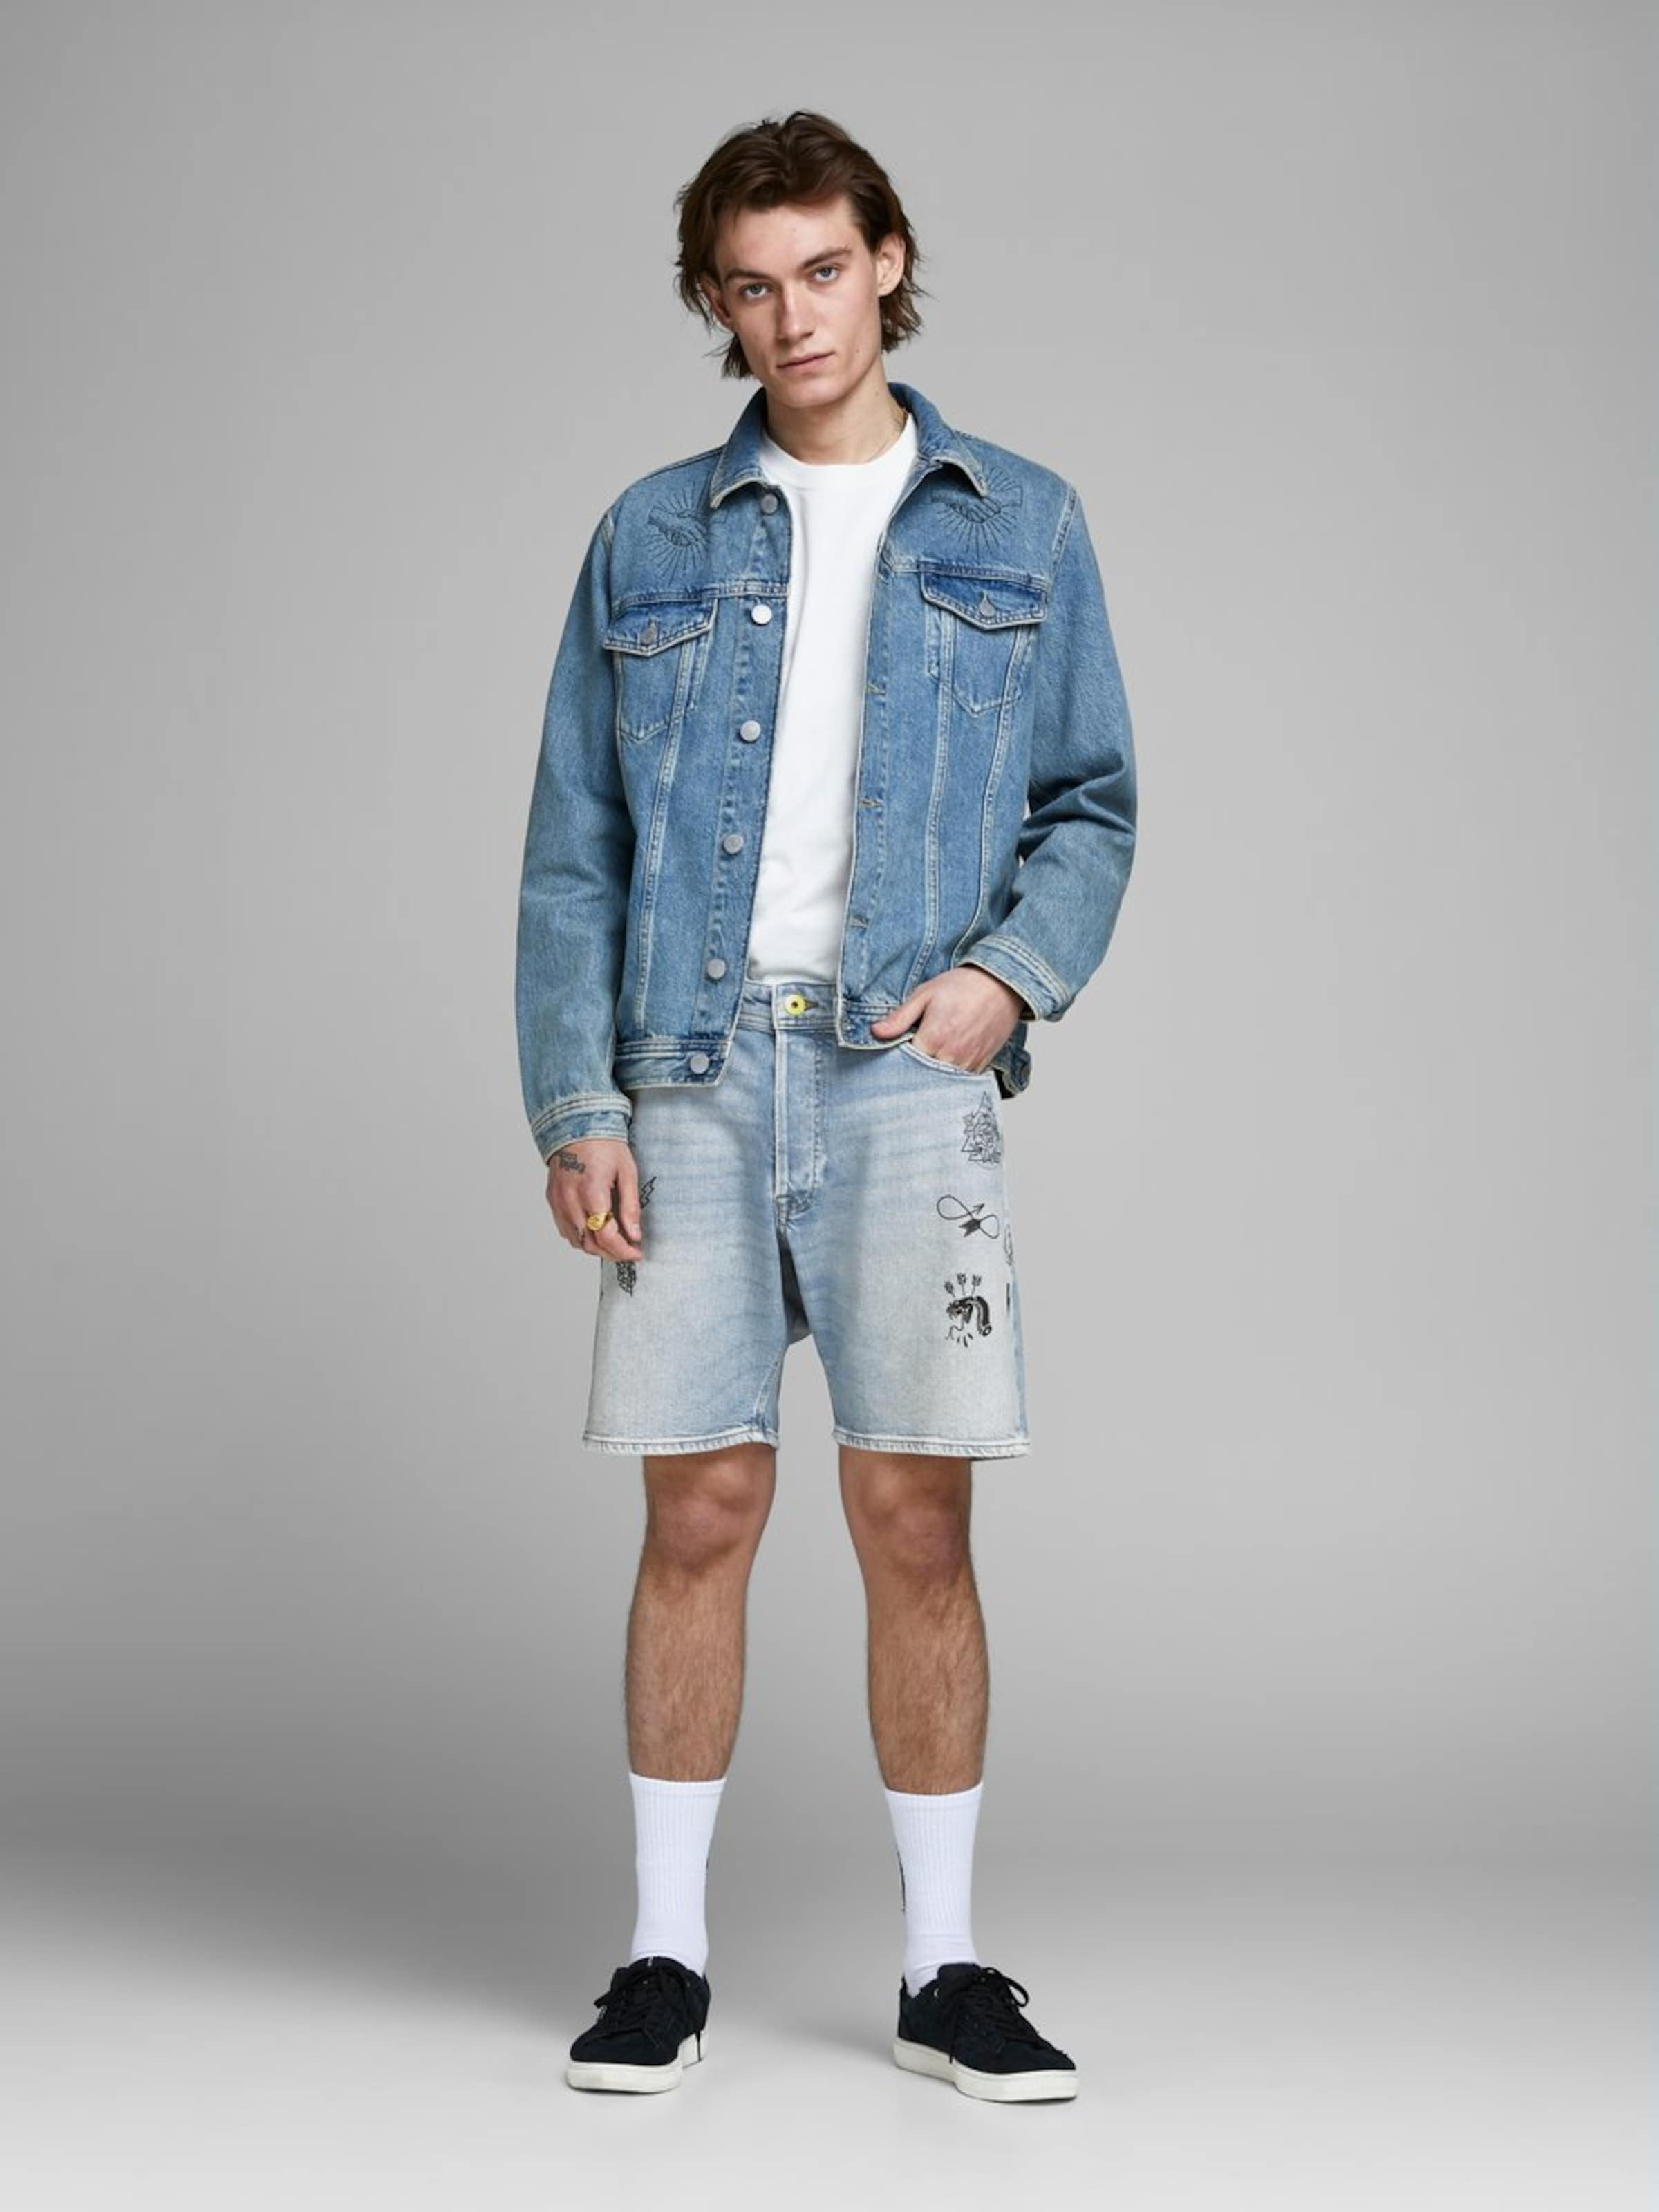 Jones Denim Bleu Jean Jackamp; En tQBChdsrx